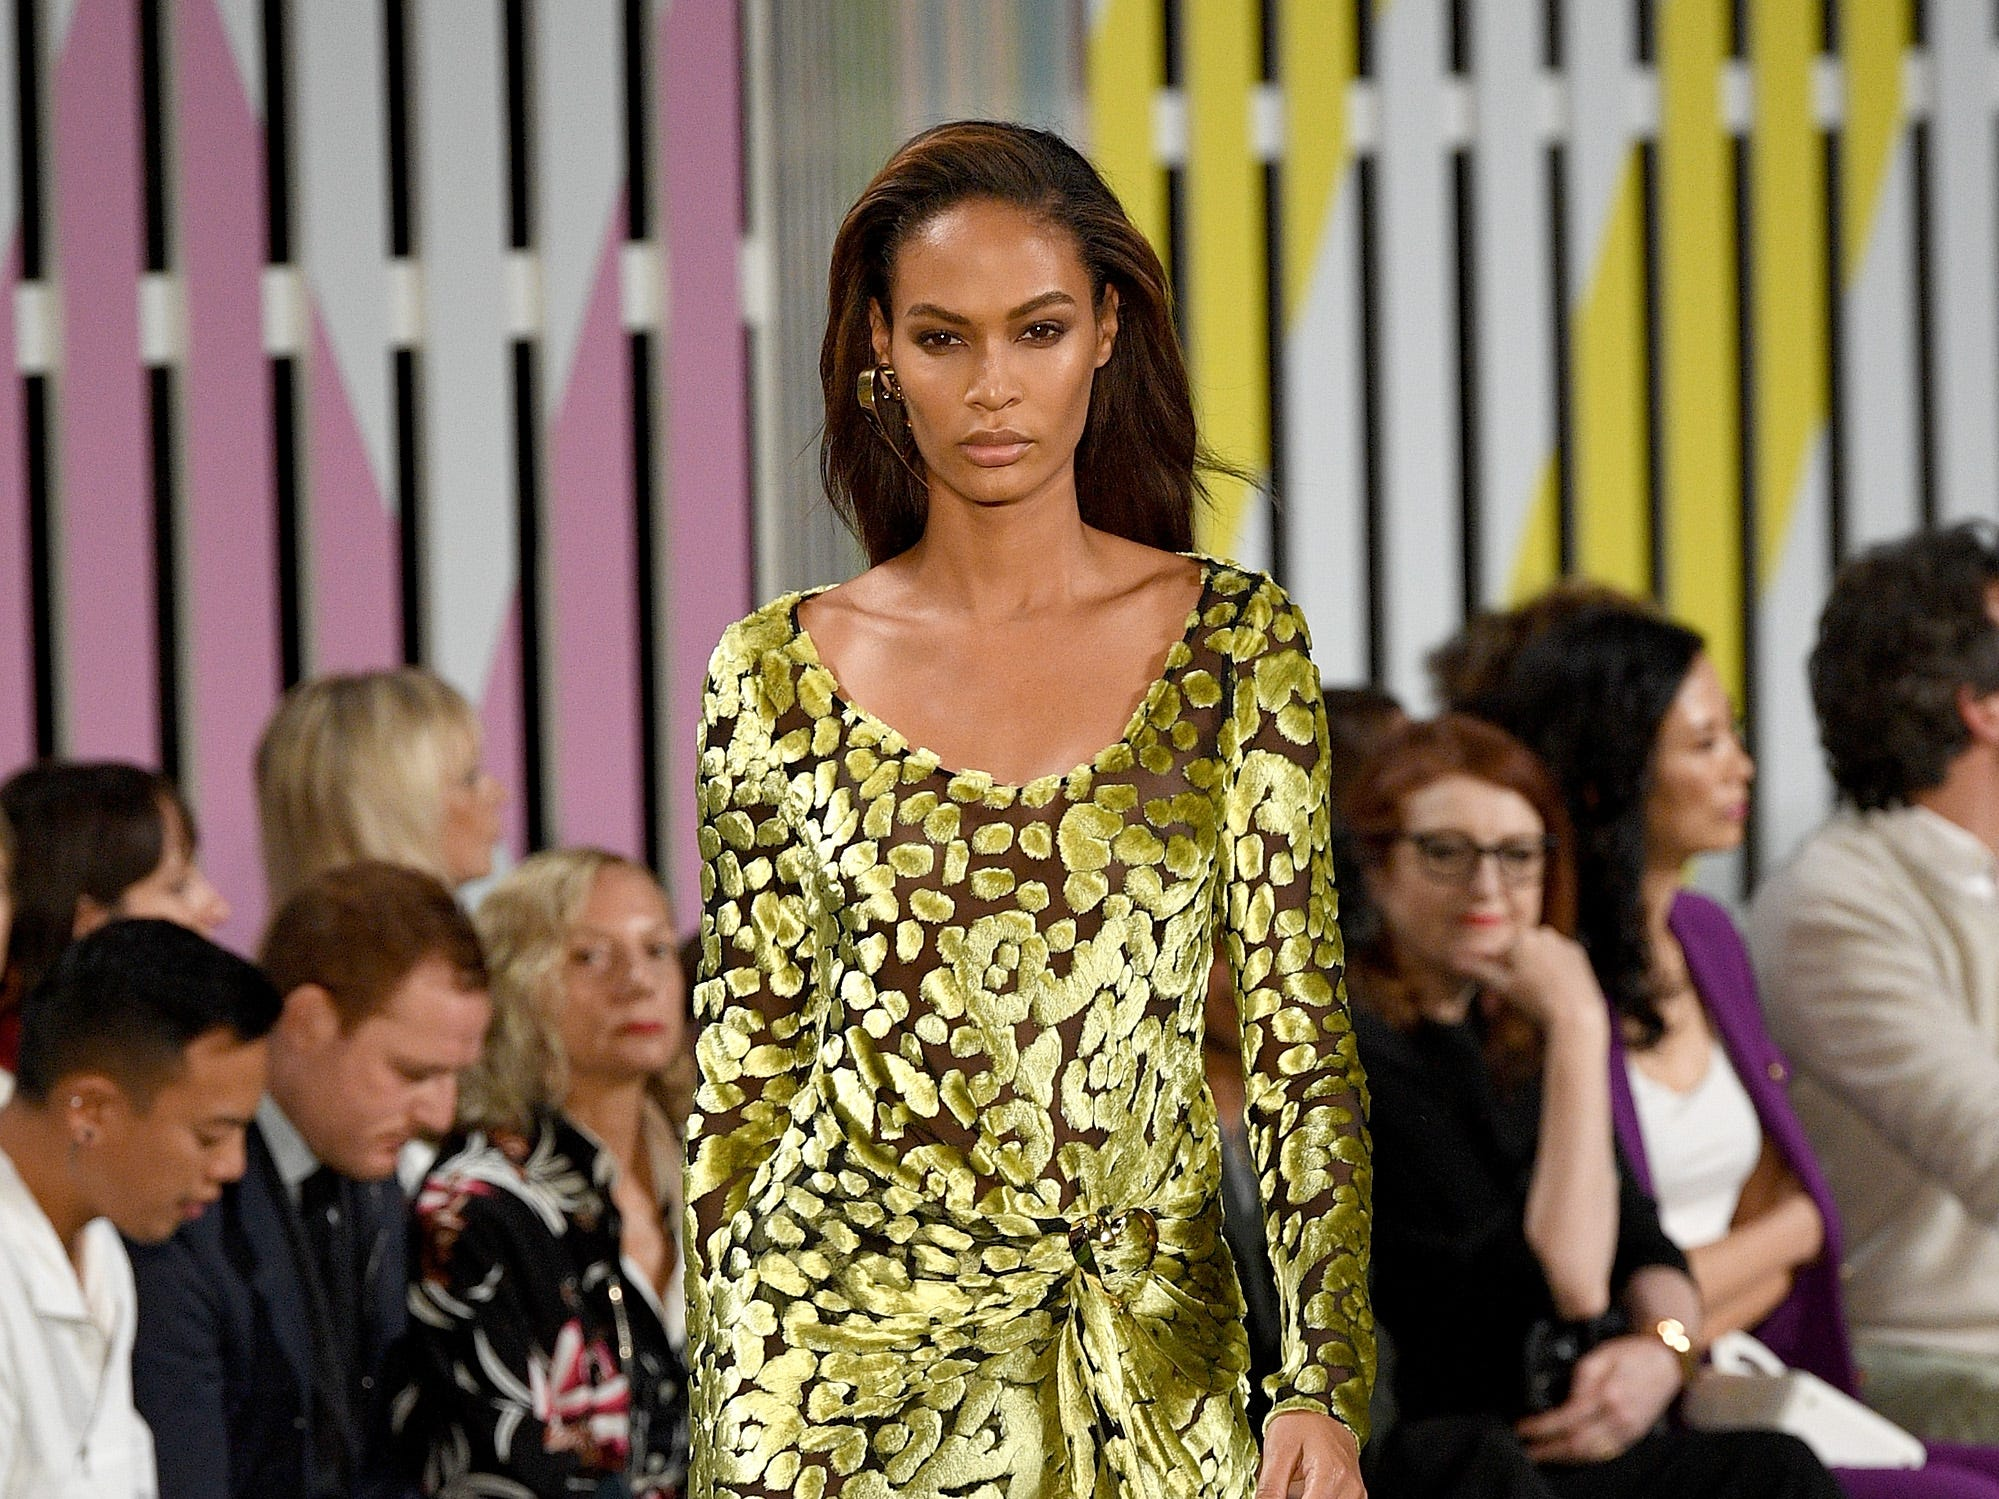 NEW YORK, NY - SEPTEMBER 09:  Joan Smalls walks the runway at the Escada show during New York Fashion Week on September 9, 2018 in New York City.  (Photo by Slaven Vlasic/Getty Images) ORG XMIT: 775216380 ORIG FILE ID: 1029929348